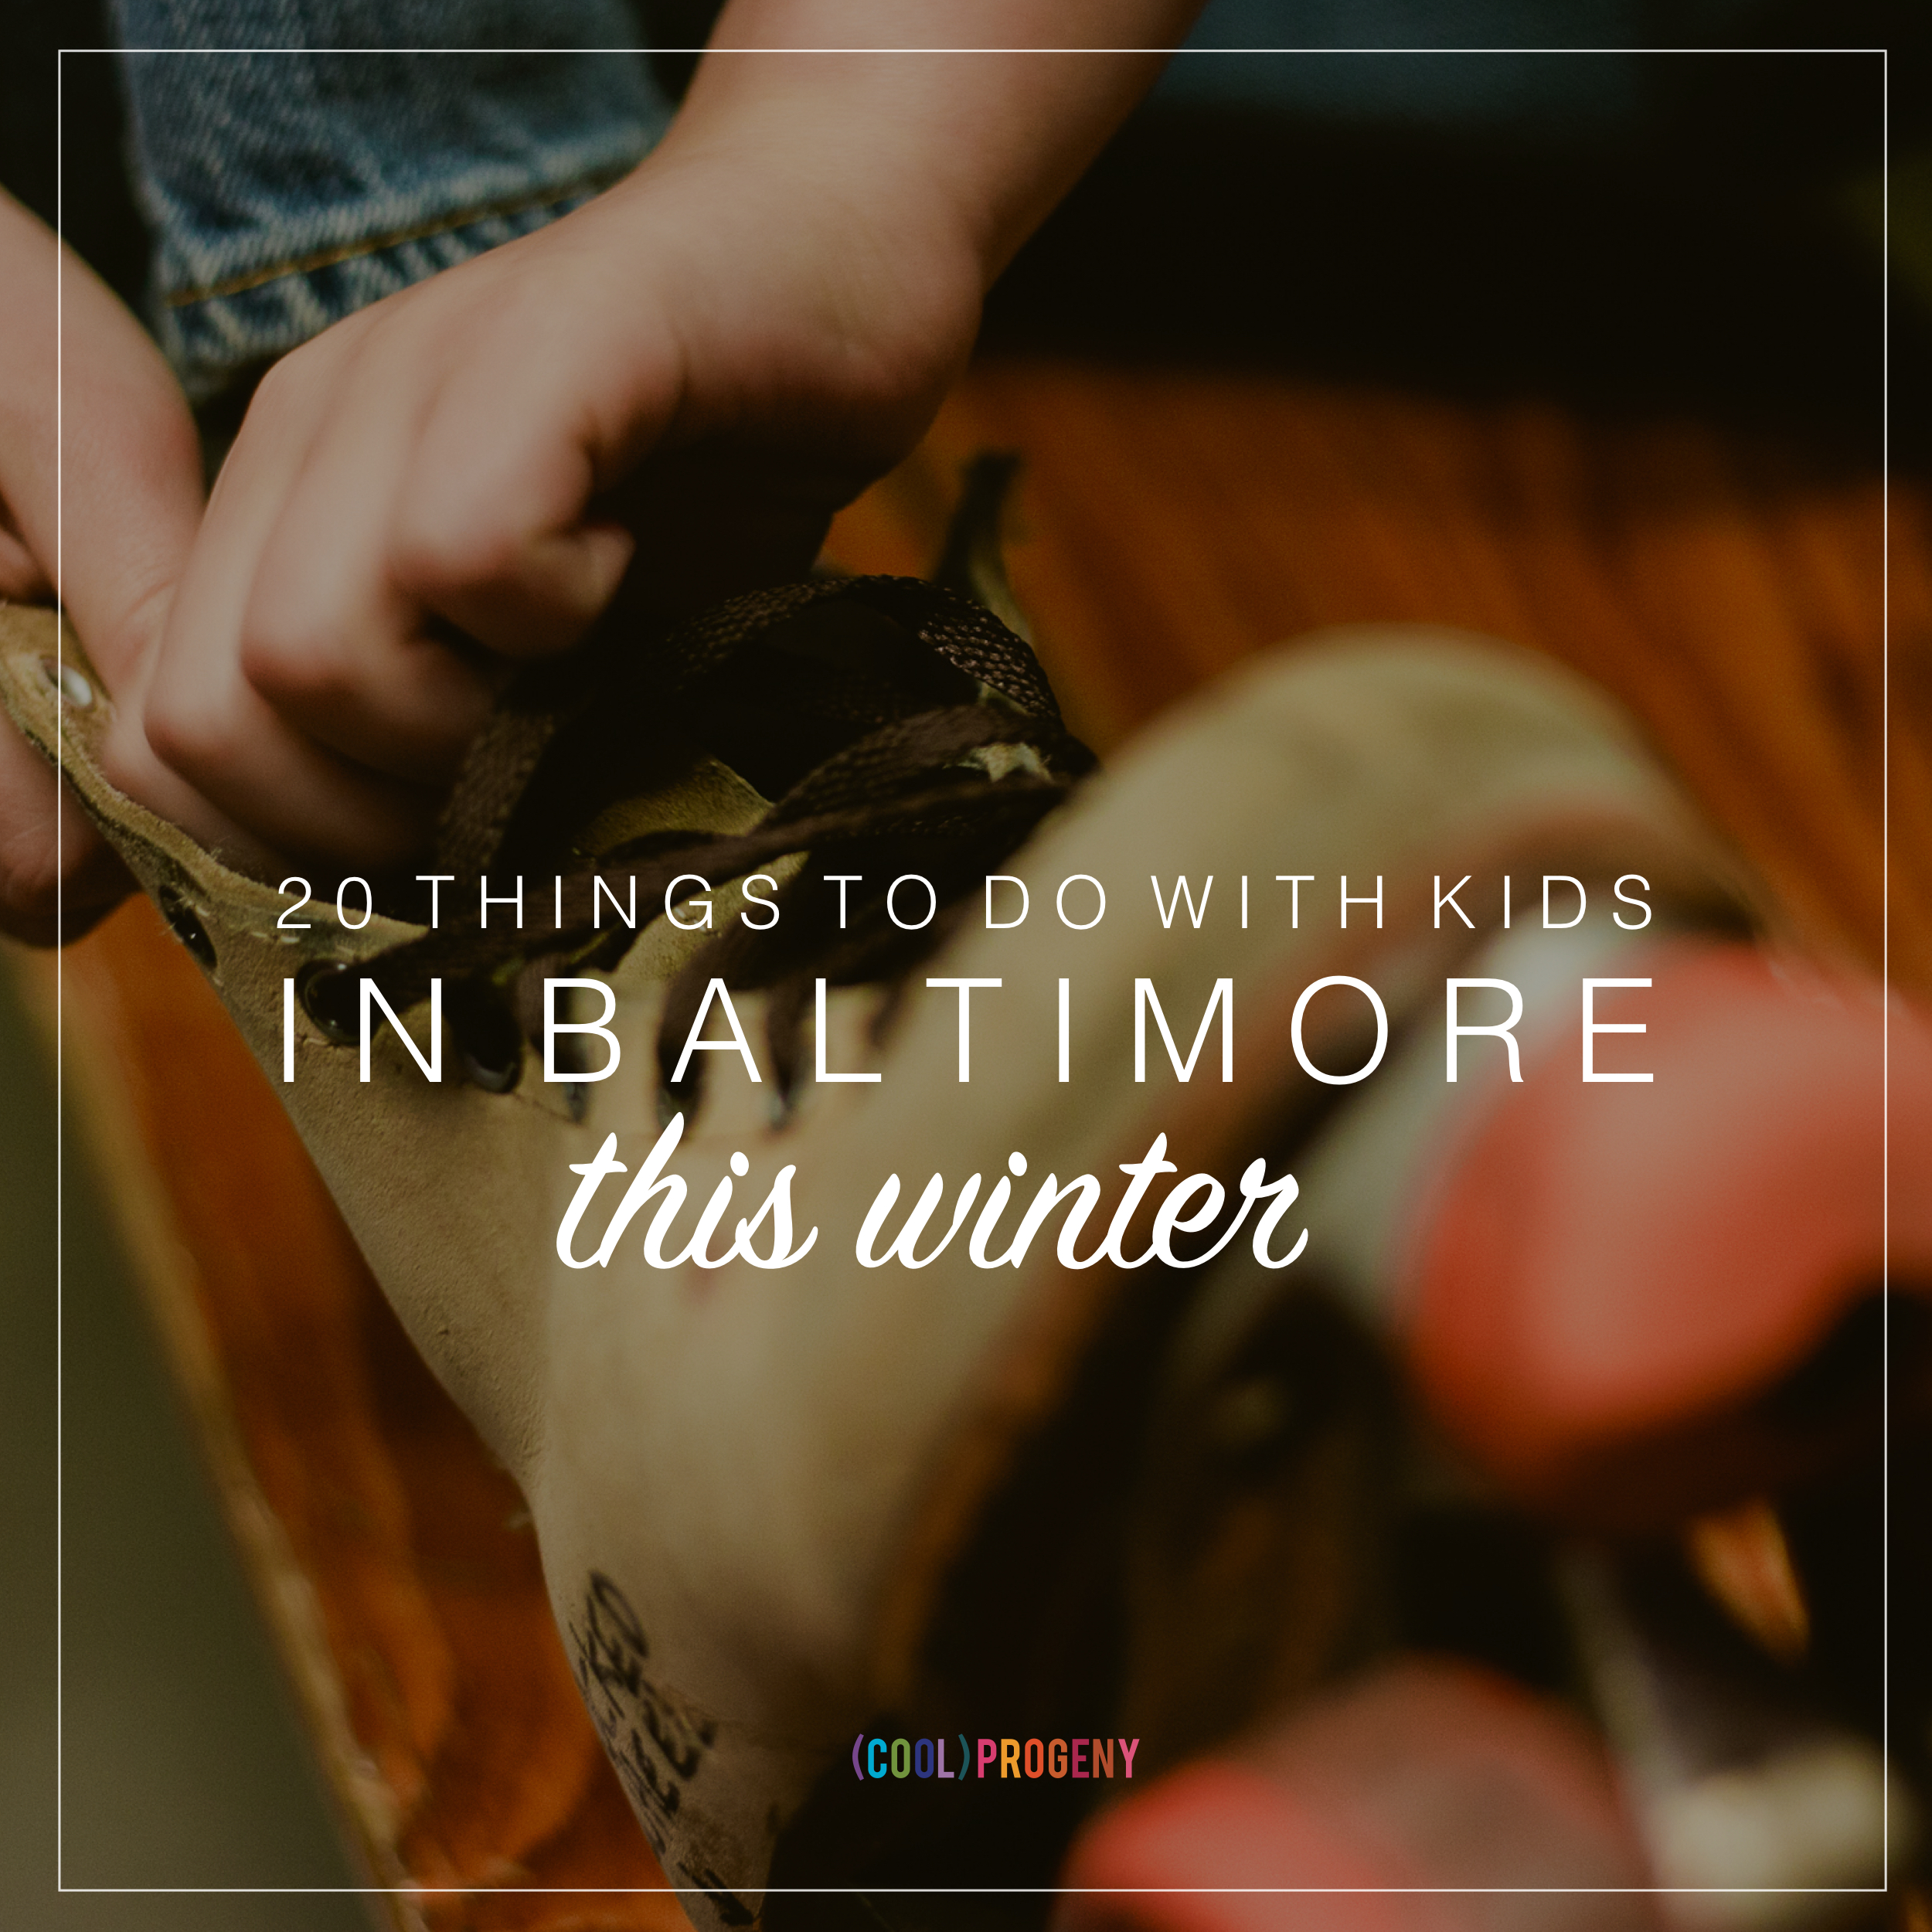 20 Things to Do with Kids in Baltimore This Winter - (cool) progeny